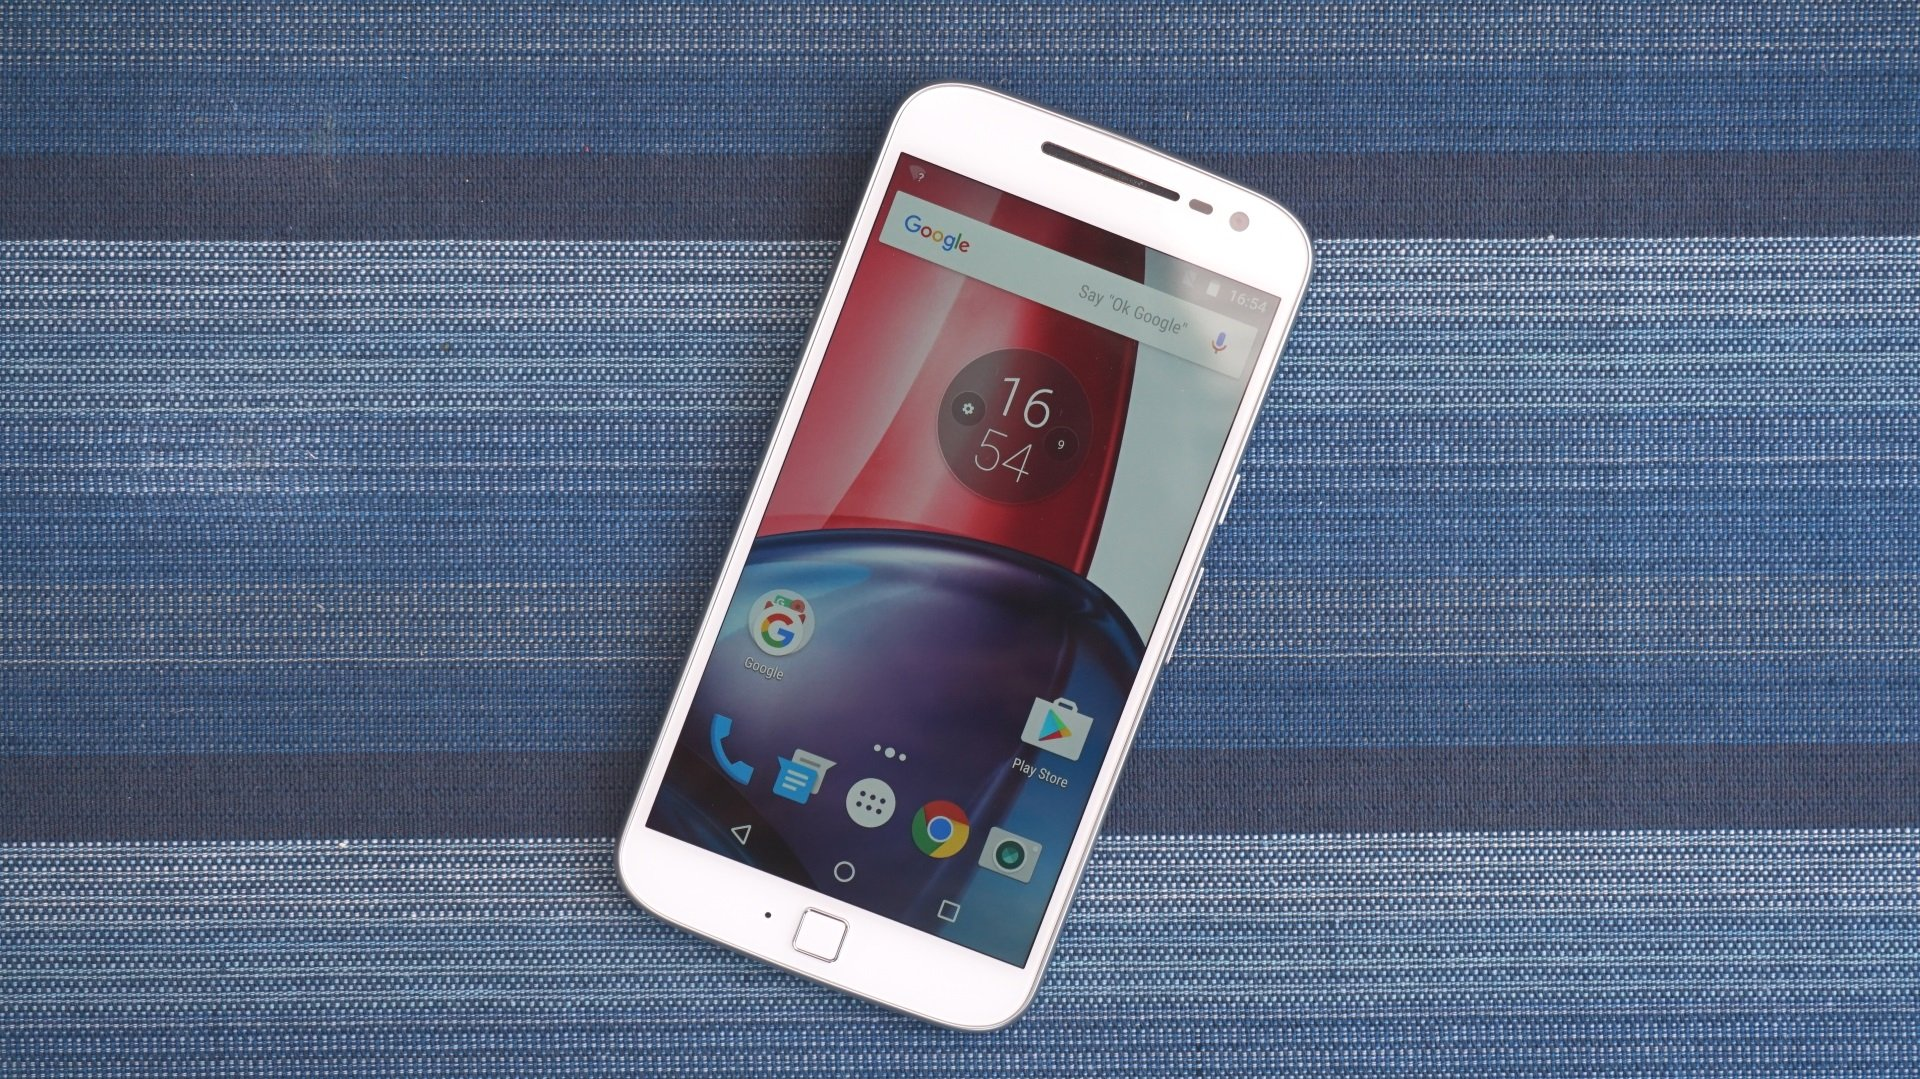 Moto G4 Plus Review The One True King Expert Reviews